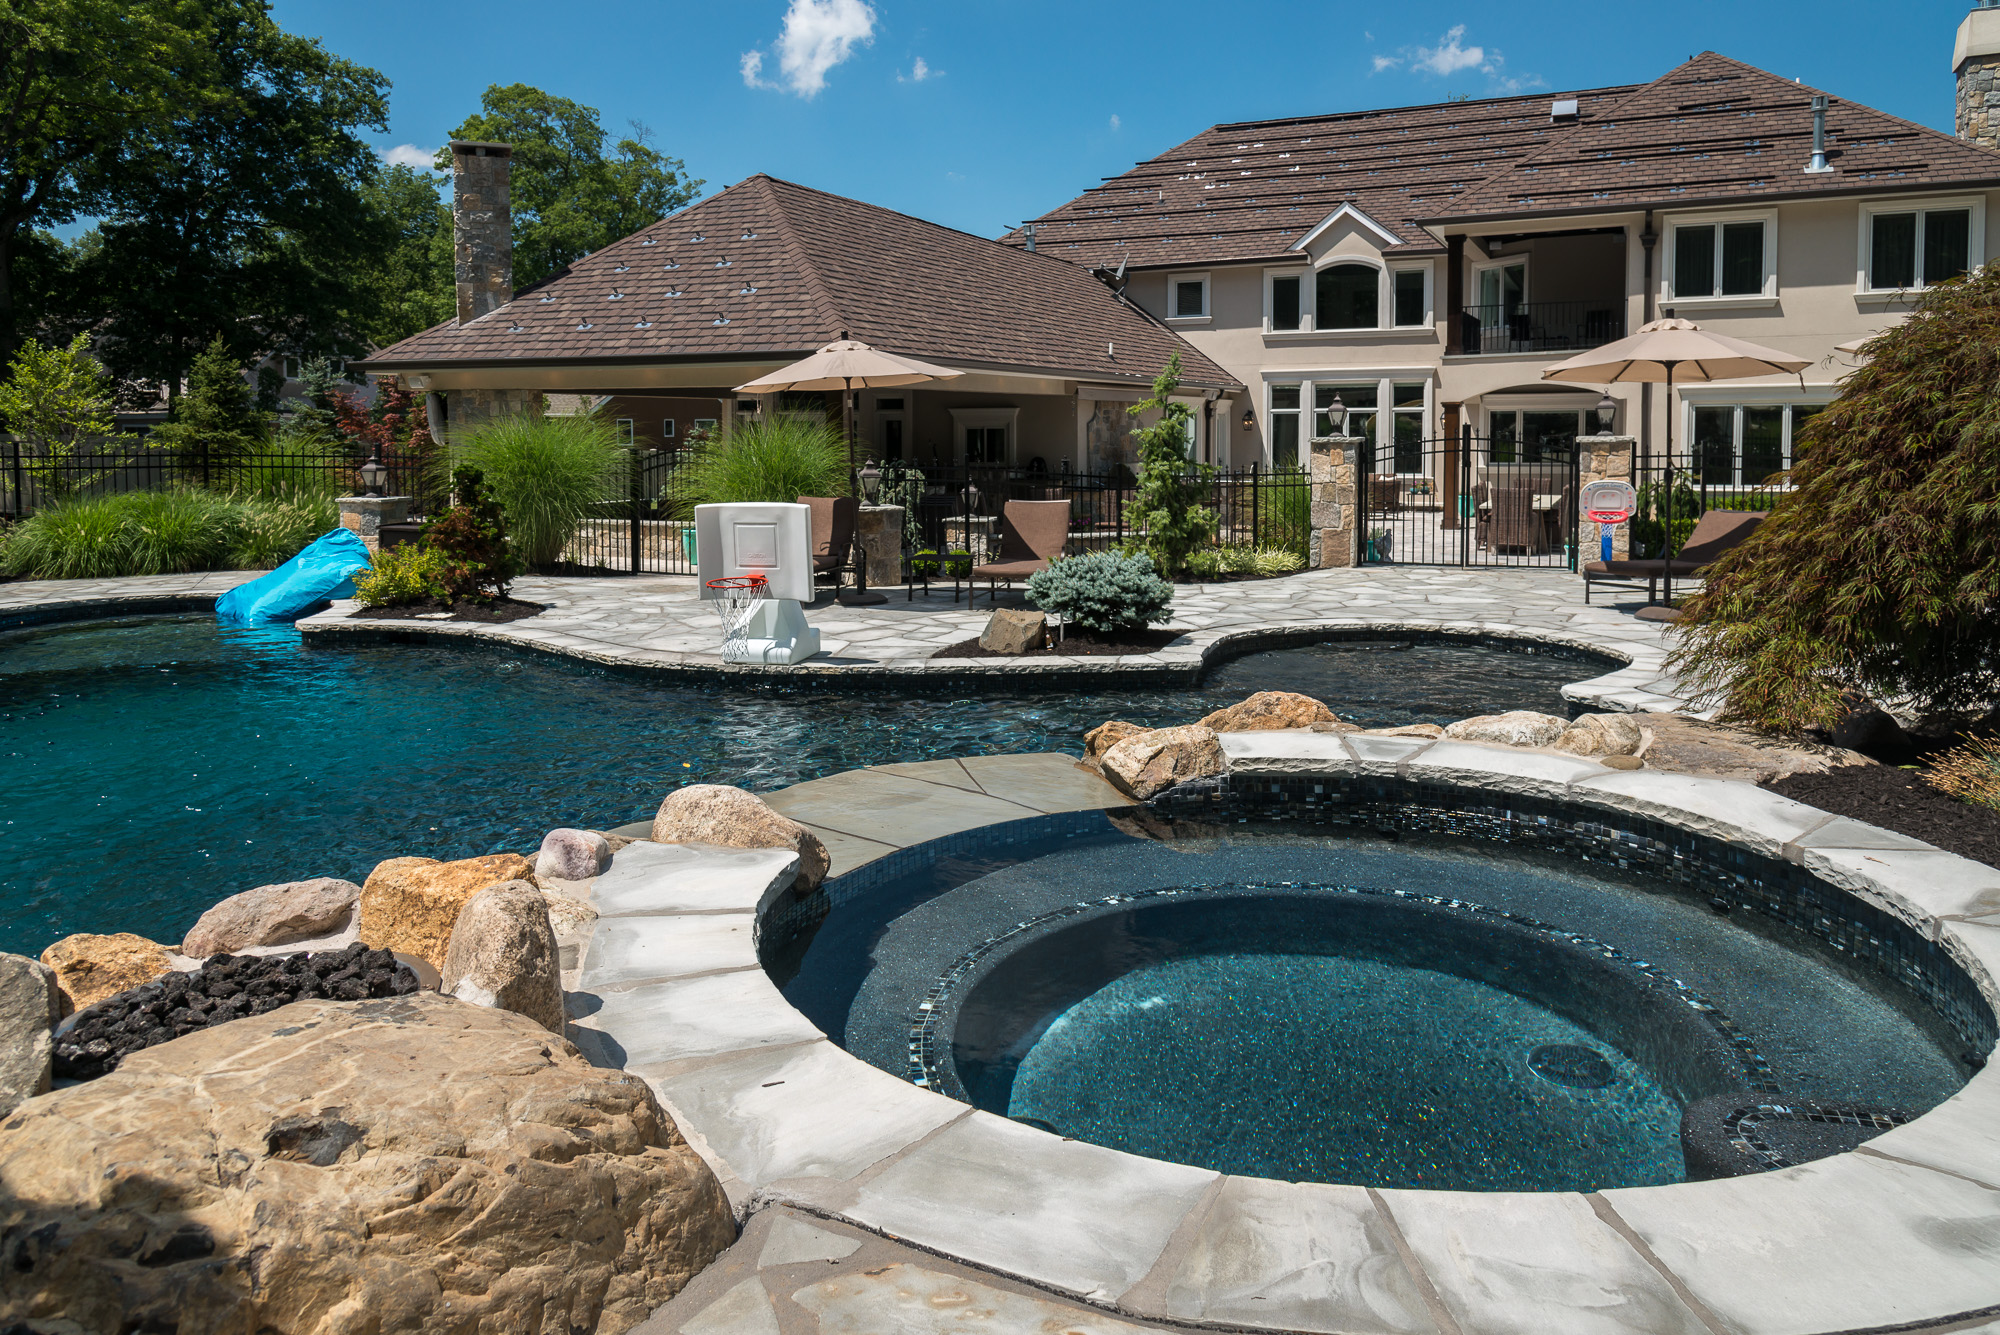 Livingston nj custom inground swimming pool design for Pool design hamilton nj